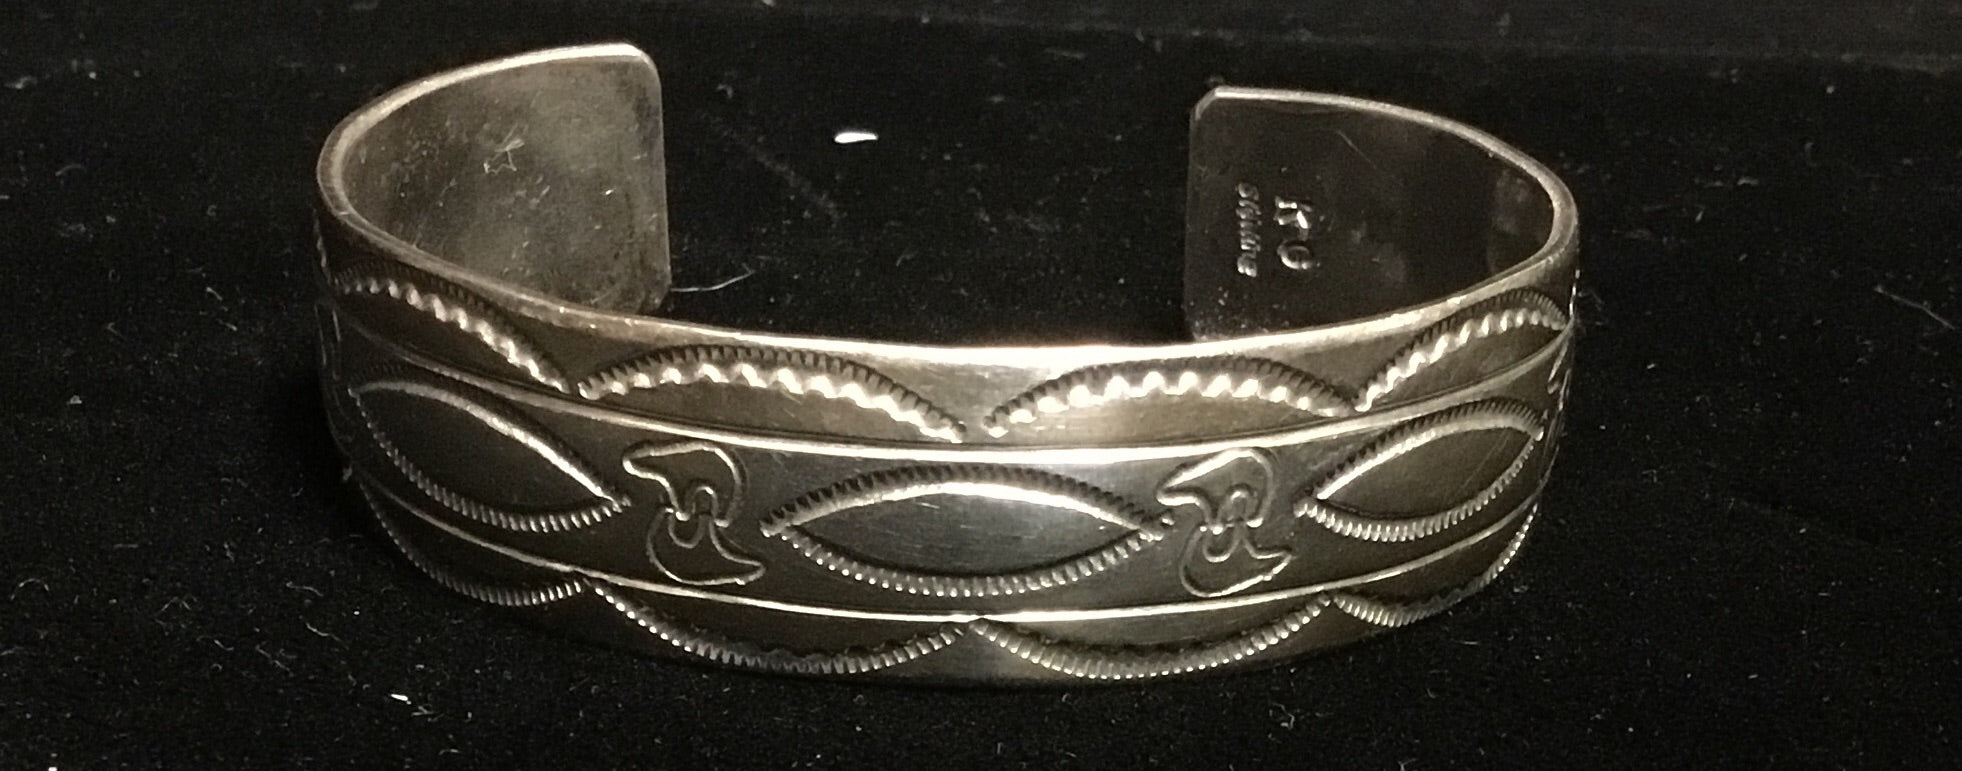 Silver Cuff Bracelet with Native American Engraving